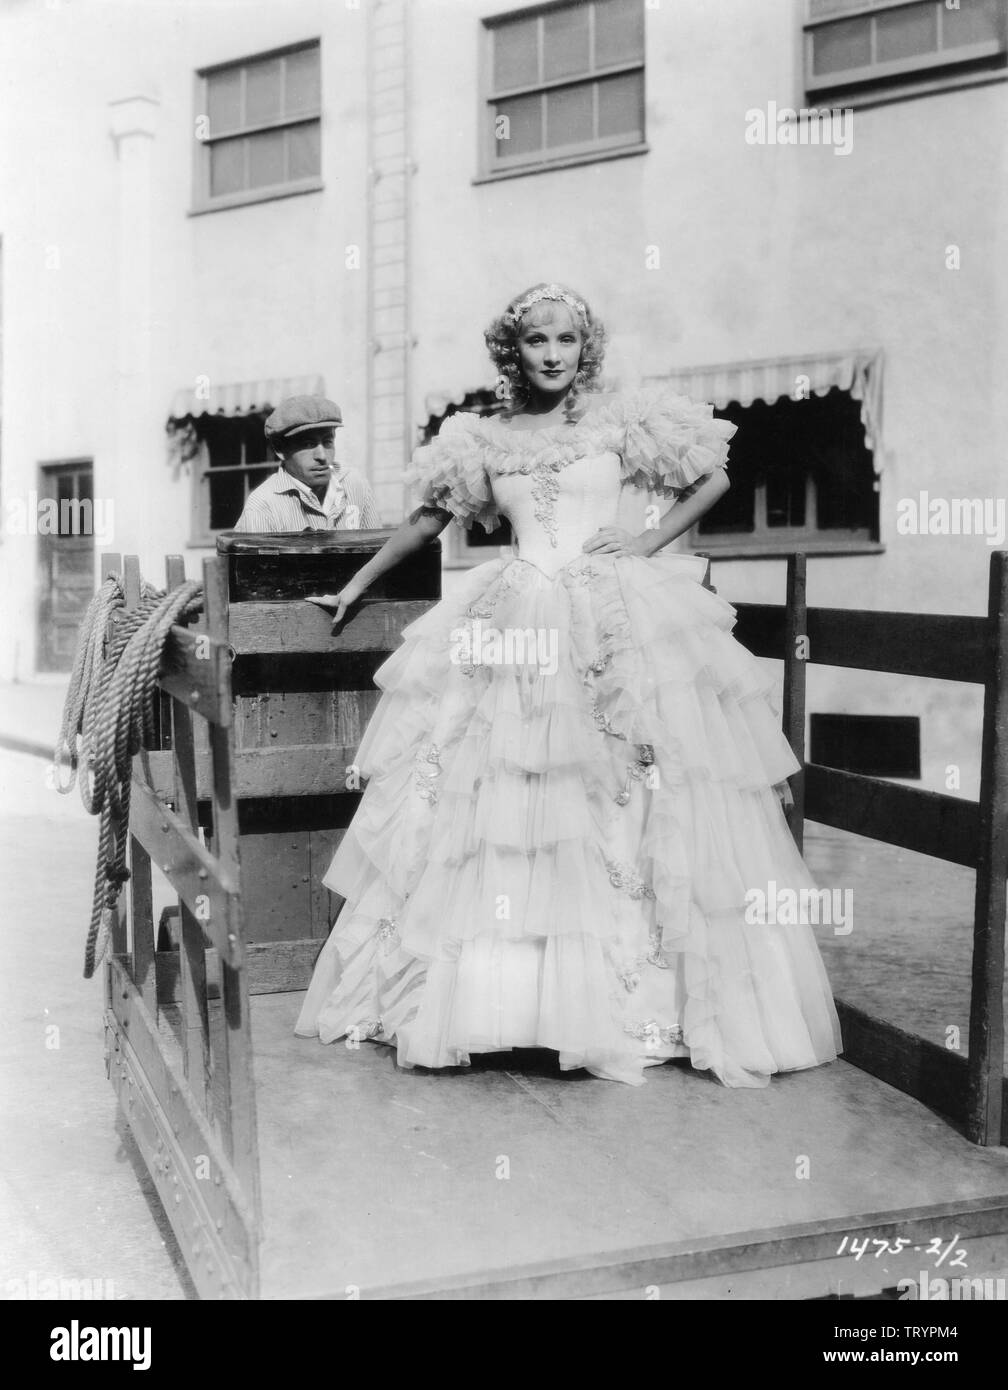 MARLENE DIETRICH as Catherine the Great of Russia in  THE SCARLET EMPRESS 1934 director Josef von STERNBERG candid on studio lot Paramount Pictures - Stock Image